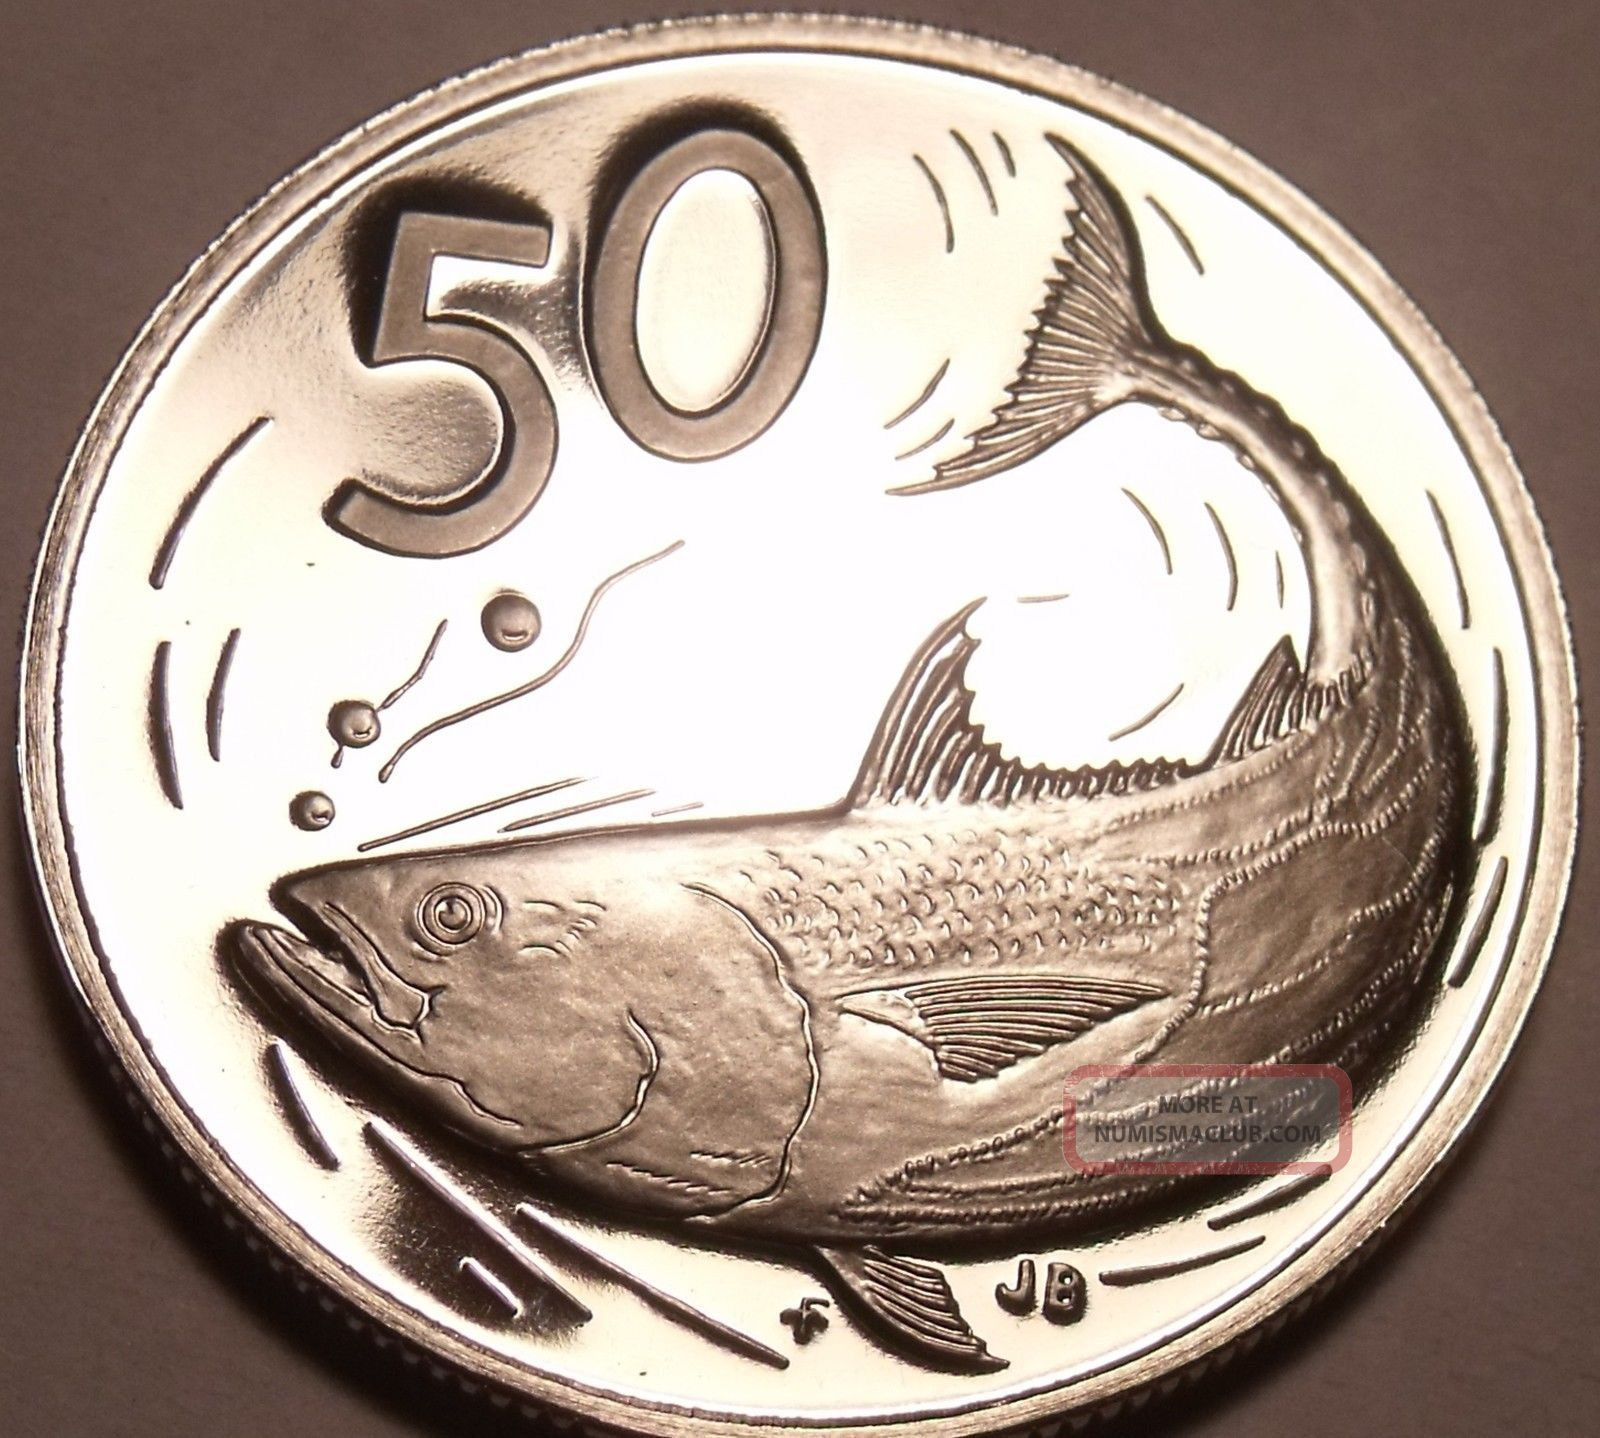 Large Cameo Proof Cook Islands 1972 50 Cents Bonito Fish 1st Year Ever Coins: World photo